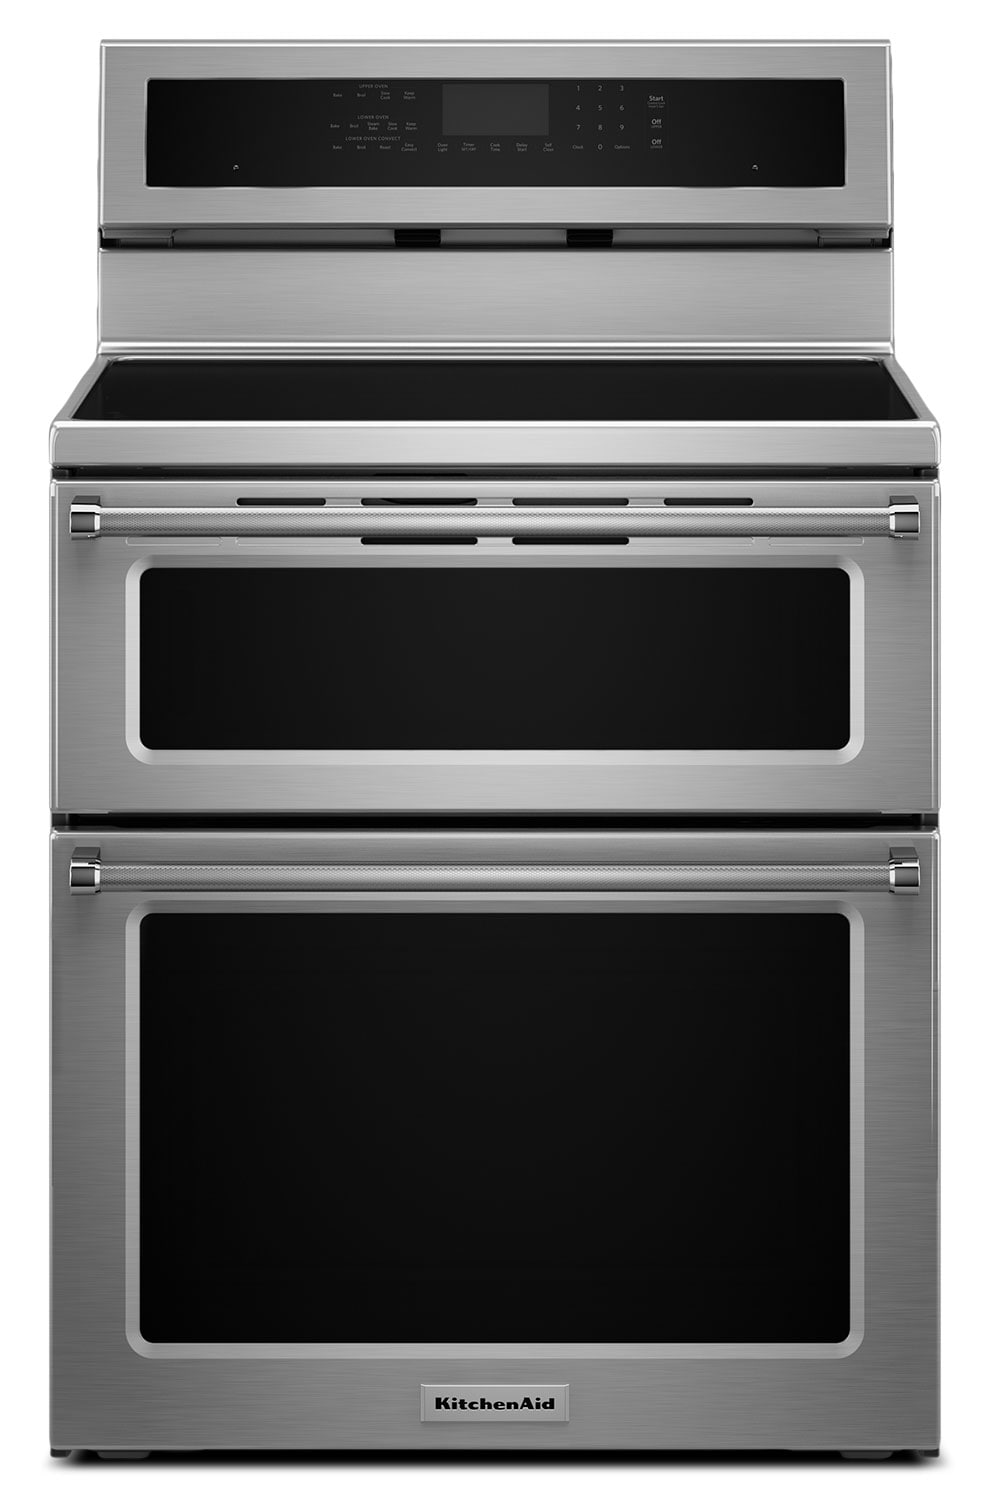 Cooking Products - KitchenAid Stainless Steel Freestanding Electric Double Range (6.7 Cu. Ft.) - YKFID500ESS